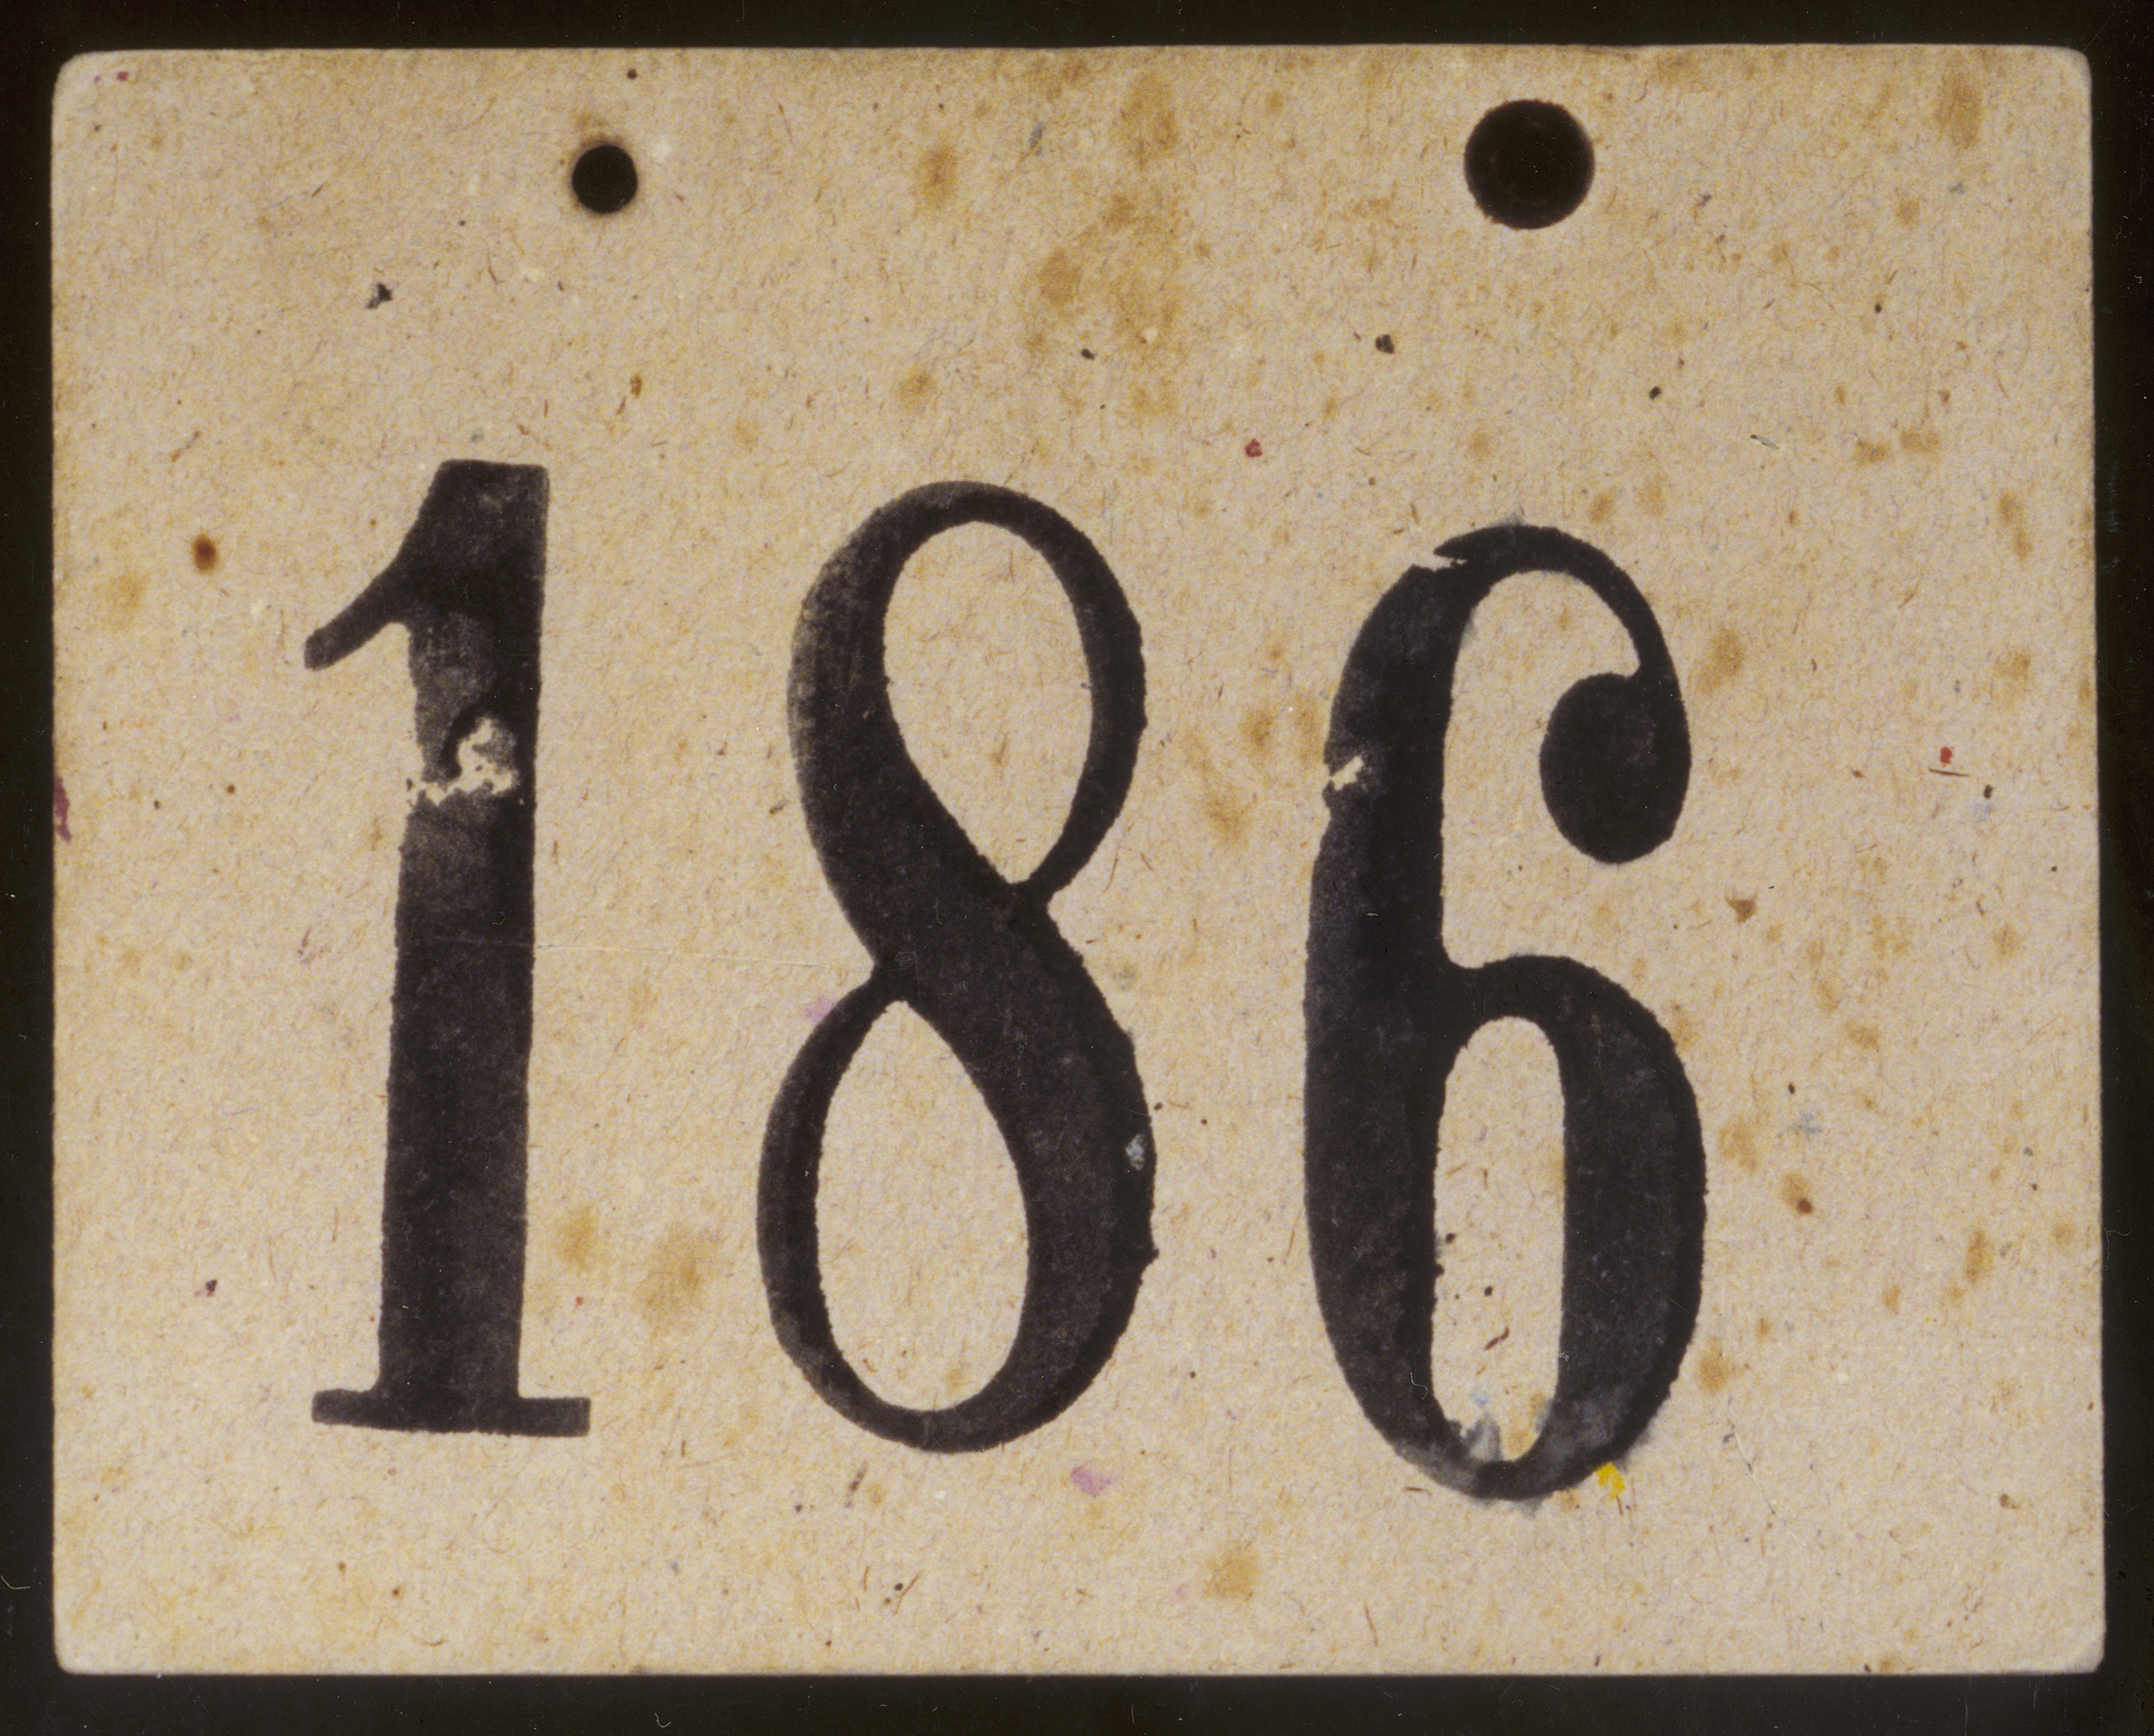 Numbered identification tag worn by Henry Schmelzer when he was a member of a Kindertransport sent from Austria to England in December 1938.